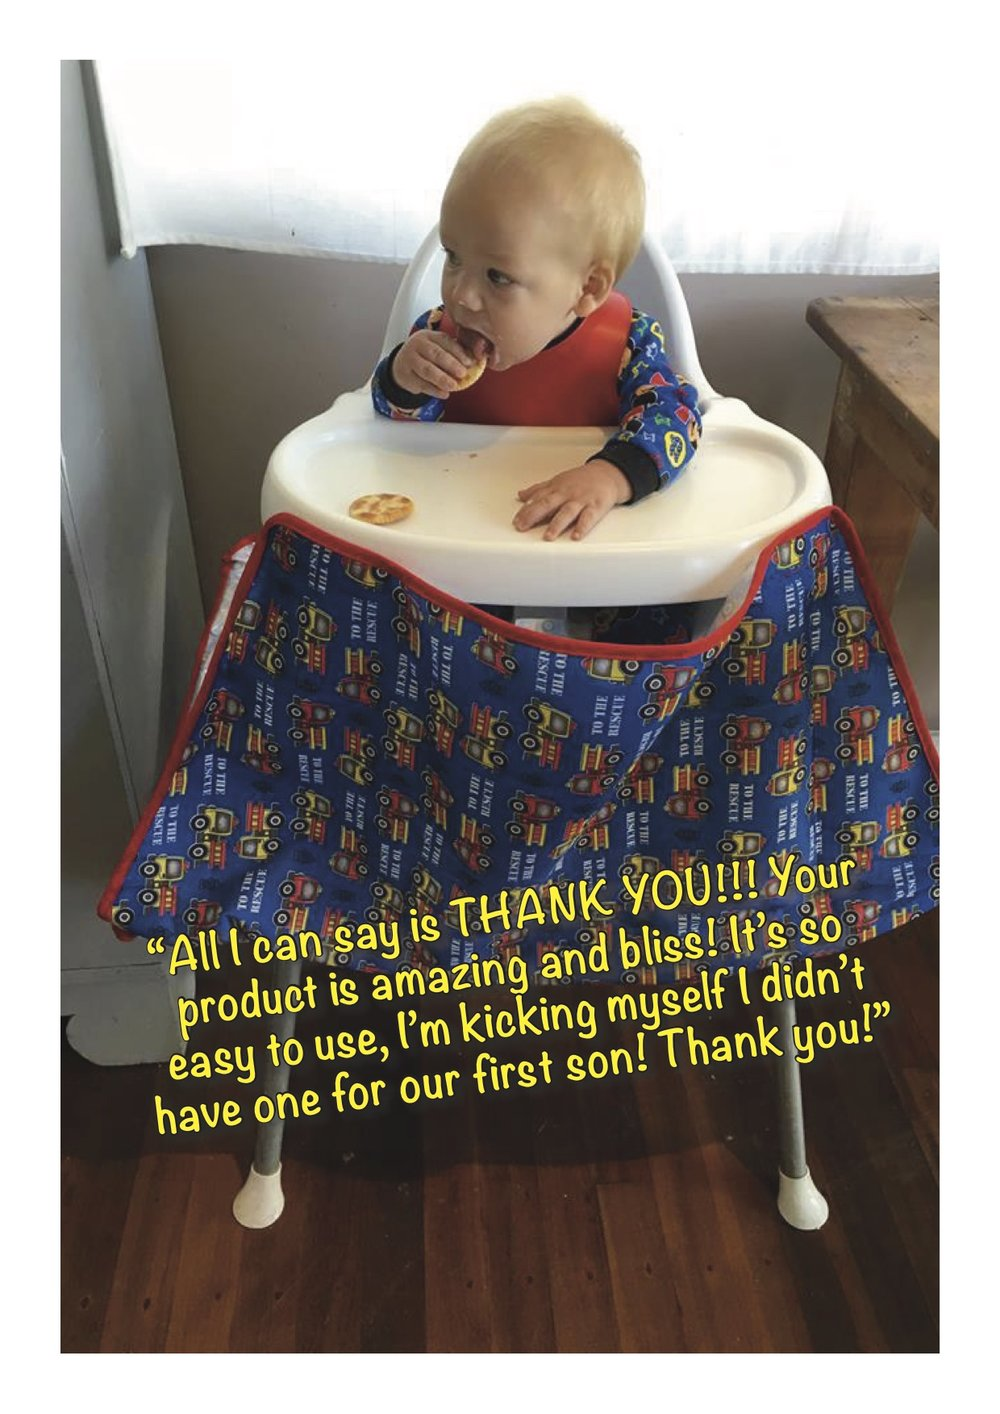 All I can say is THANK YOU!!! You're product is amazing and bliss! It's so easy to use, I'm kicking myself I didn't have one for our first son! Thank you!.jpg